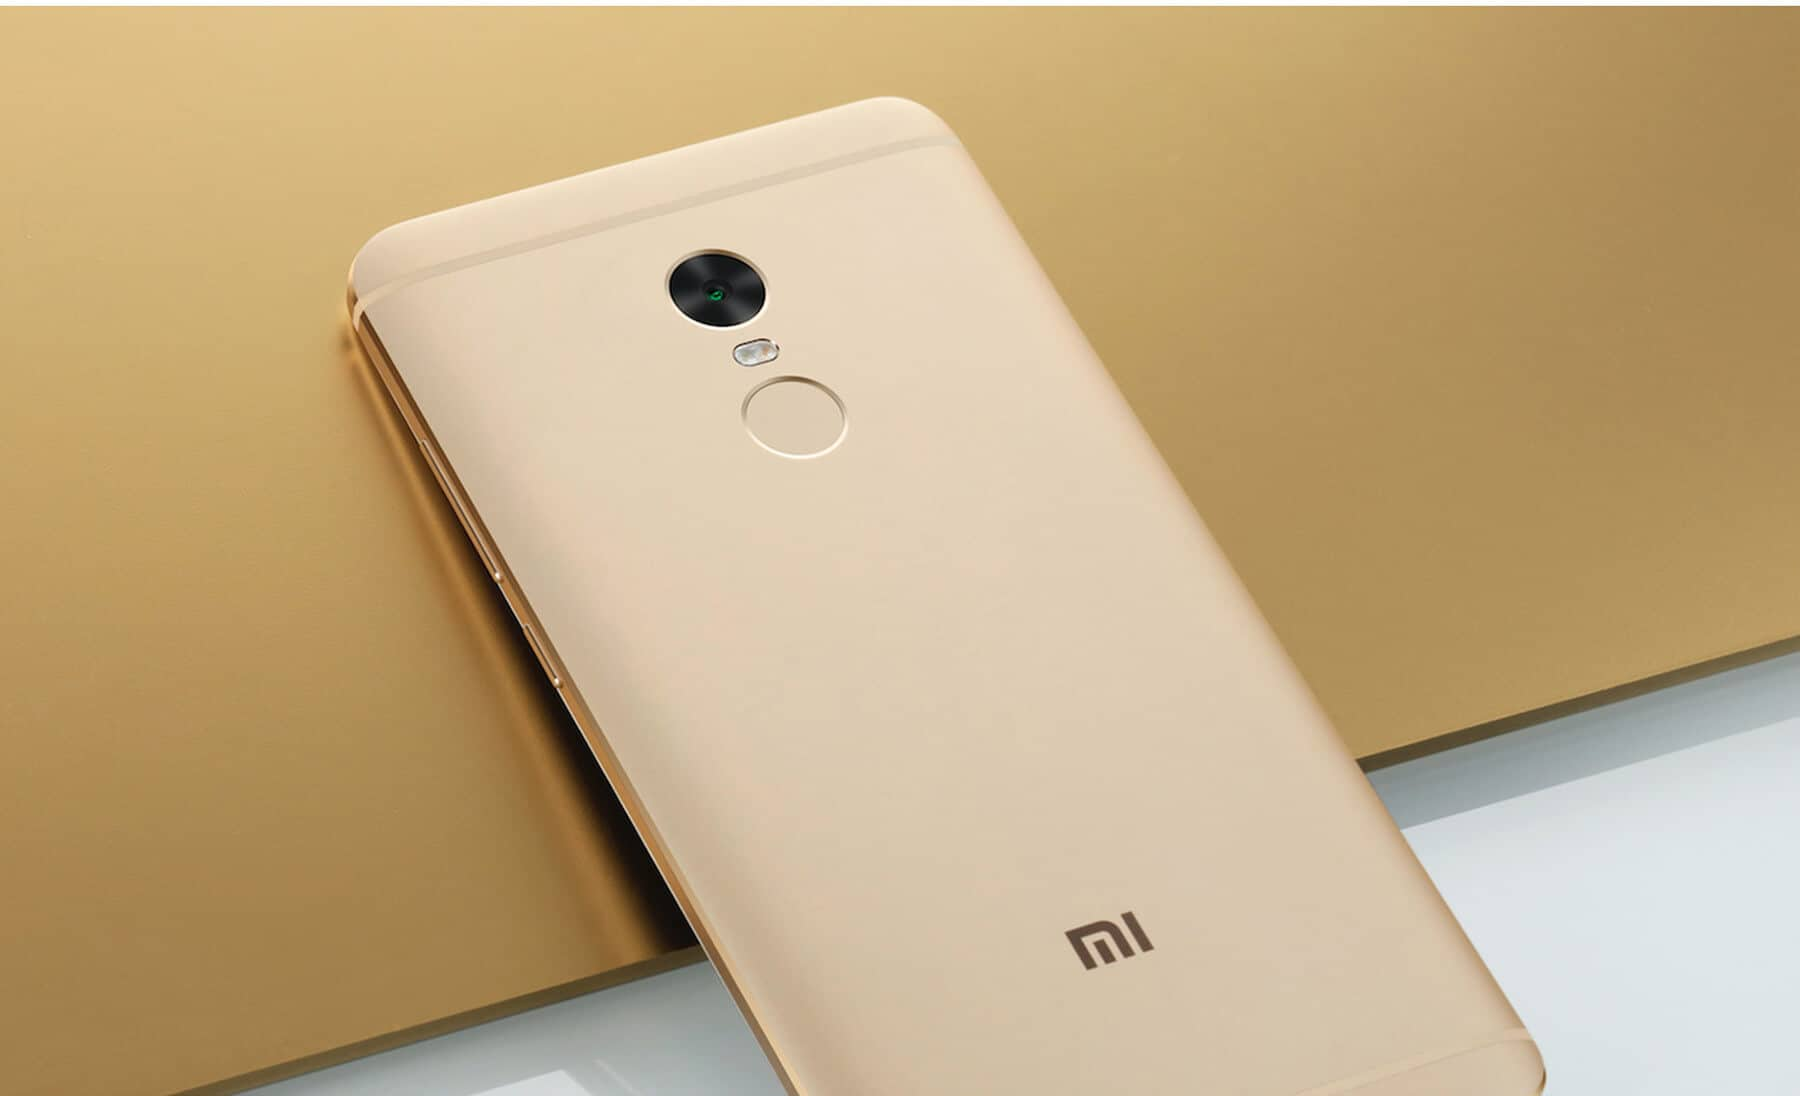 Budget 16mp Camera Phones In India Rs 9999 Price Pony Xiaomi Redmi 3 Pro 32 Gb Gold